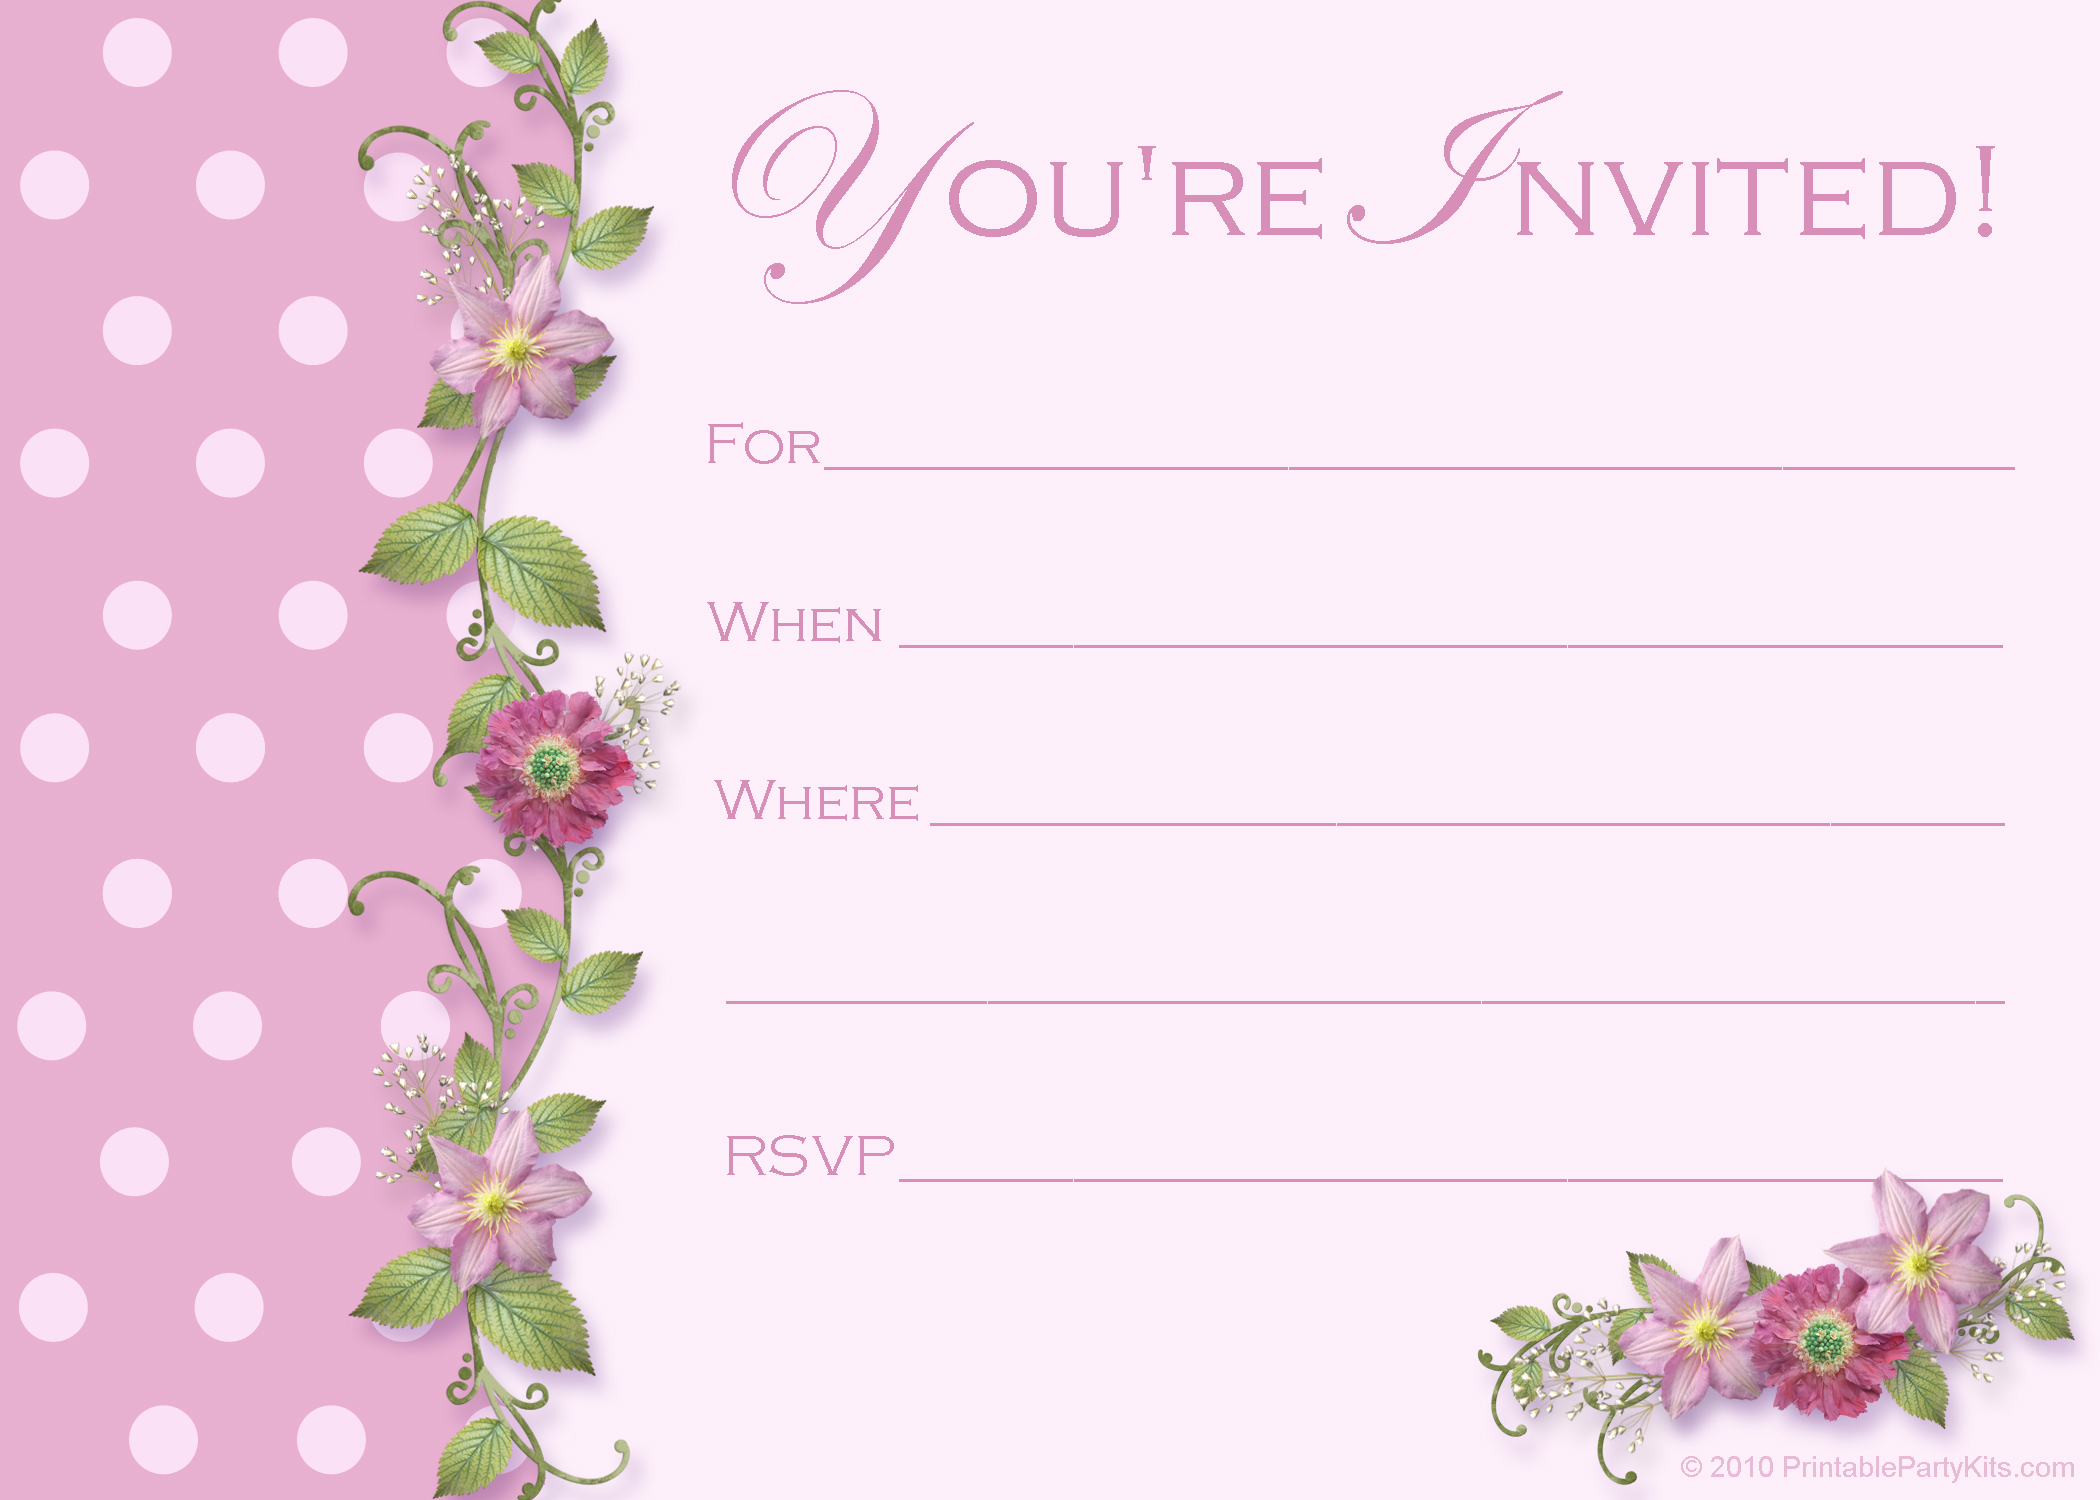 birthday invitation card design free download ; birthday-invitation-templates-free-download-to-inspire-you-how-to-create-the-Birthday-invitation-with-the-best-way-5